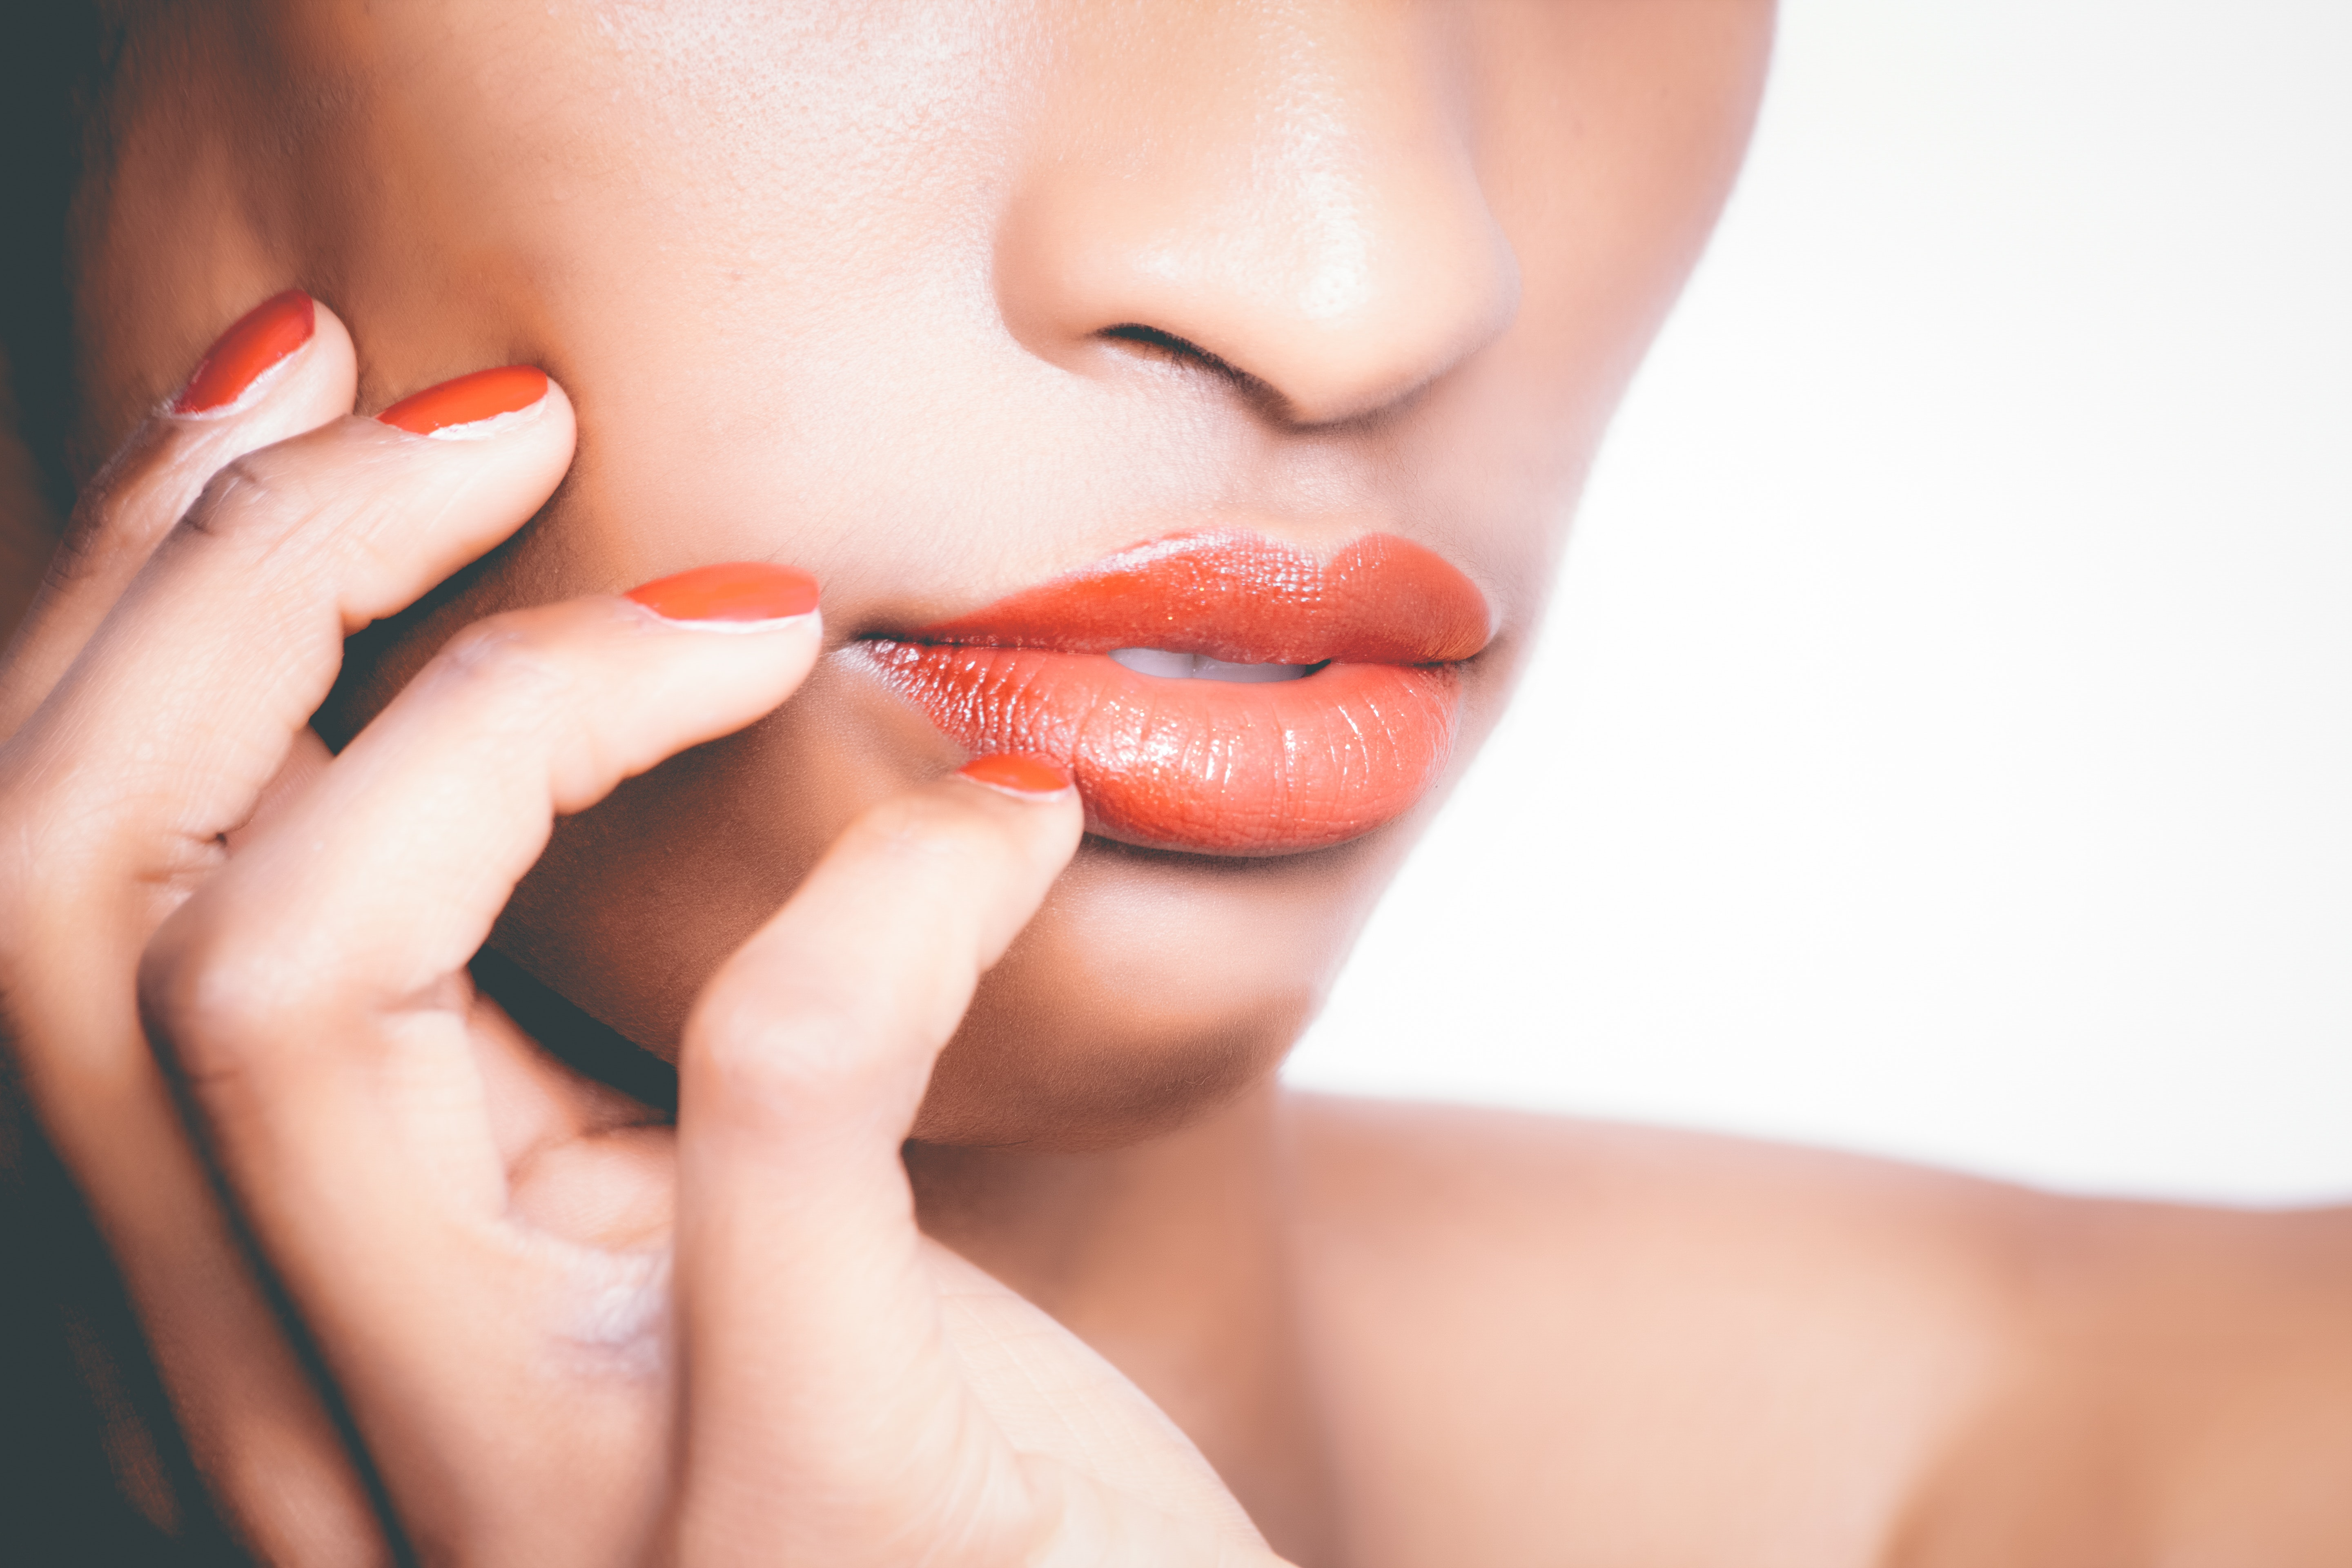 Coral nails and lips